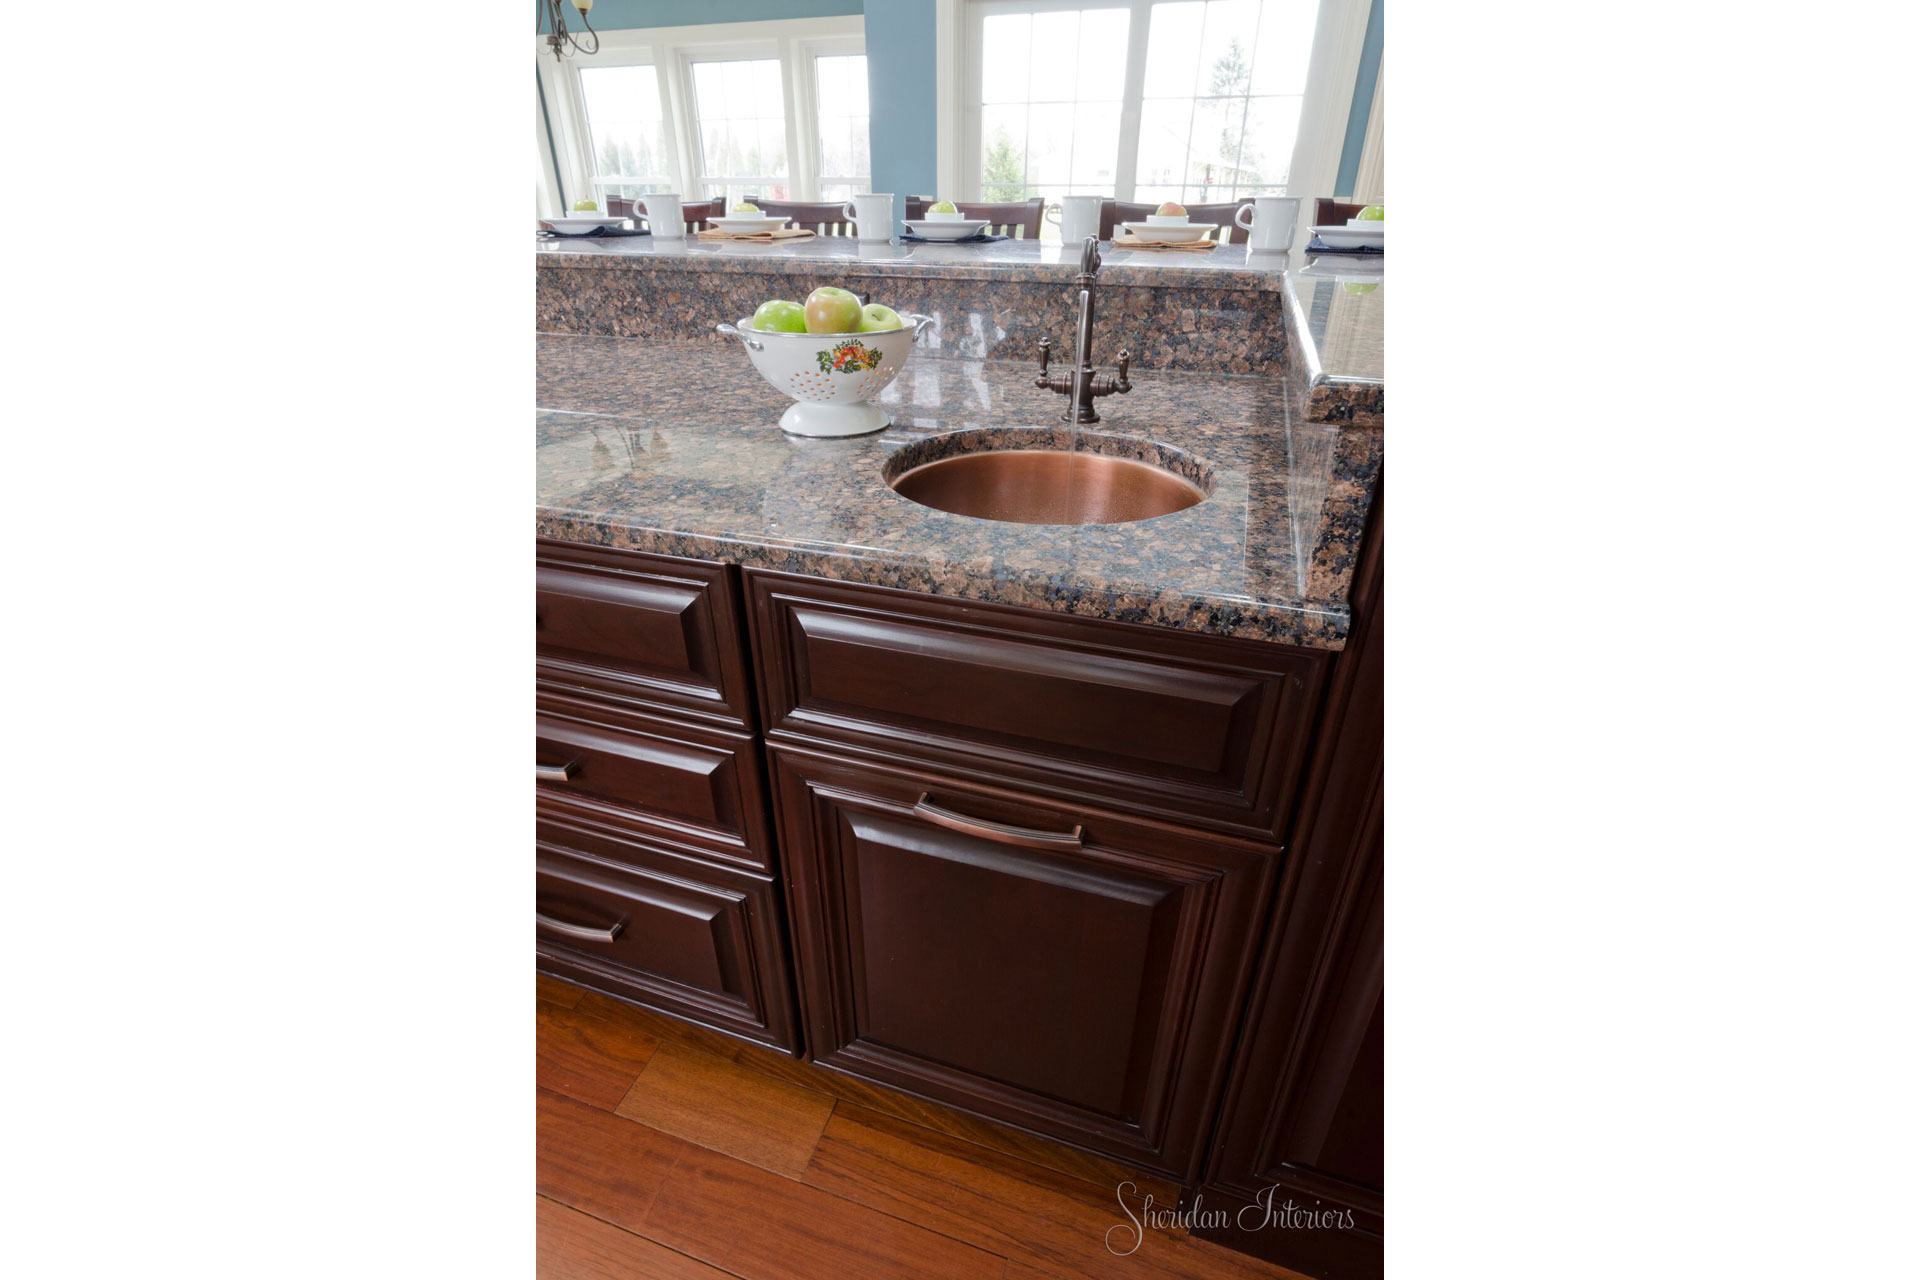 copper round sink in kitchen, Traditional Kitchen Island with Copper Bar Sink - Sheridan Interiors, sheridan interiors kitchens and baths, kitchen designer cornwall, kitchen designer ottawa